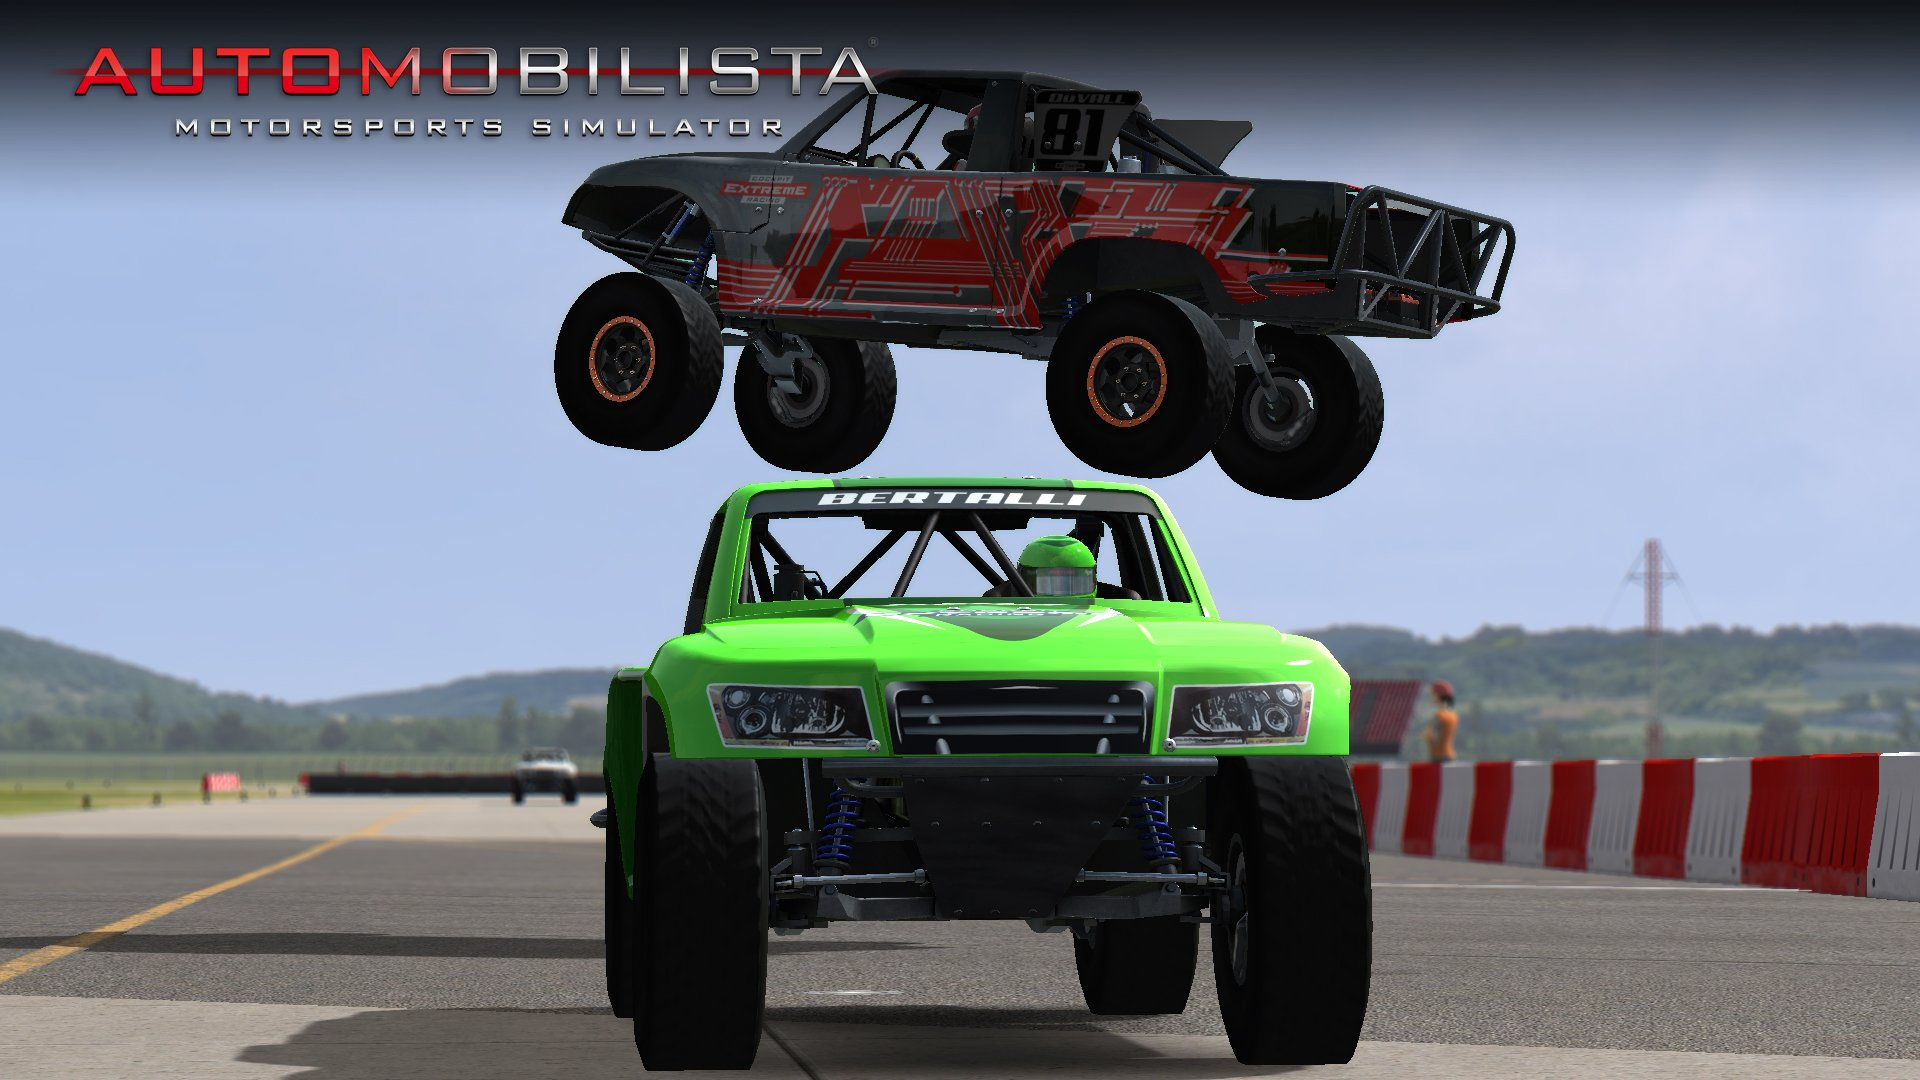 Automobilista Trophy Truck big jump